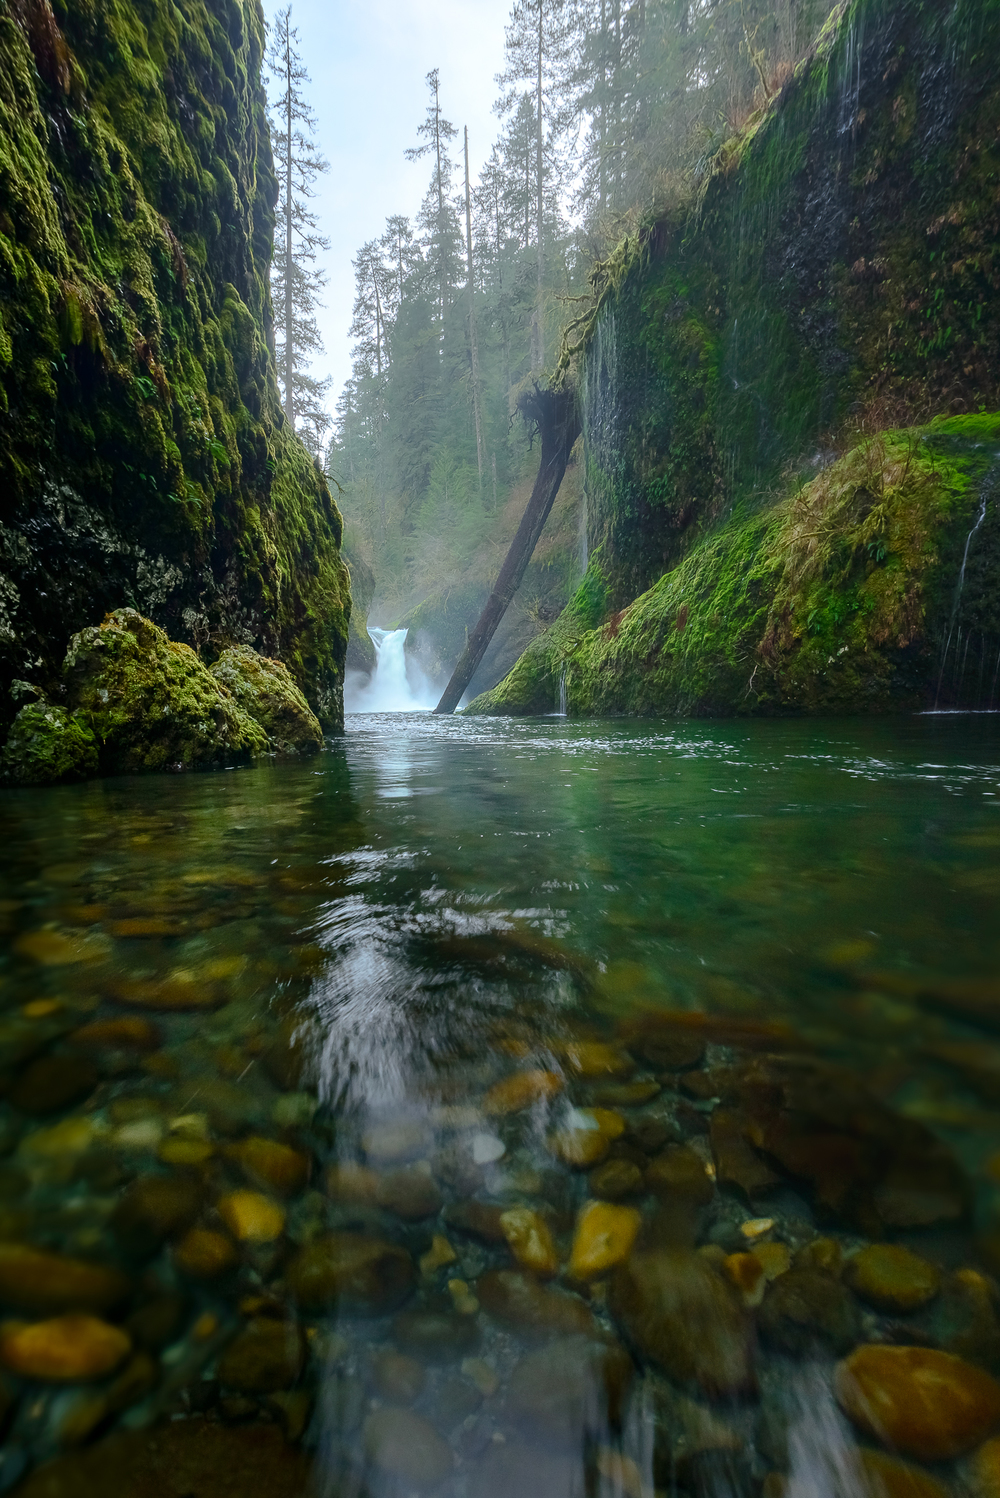 To get this view I had to don fishing waders and scurry out into the creek flow.  Unfortunately I had to do it twice since I slipped the first time, filling my waders and completely soaking myself.  It was only 48 degrees out so....no big deal.  Punchbowl Falls, OR.